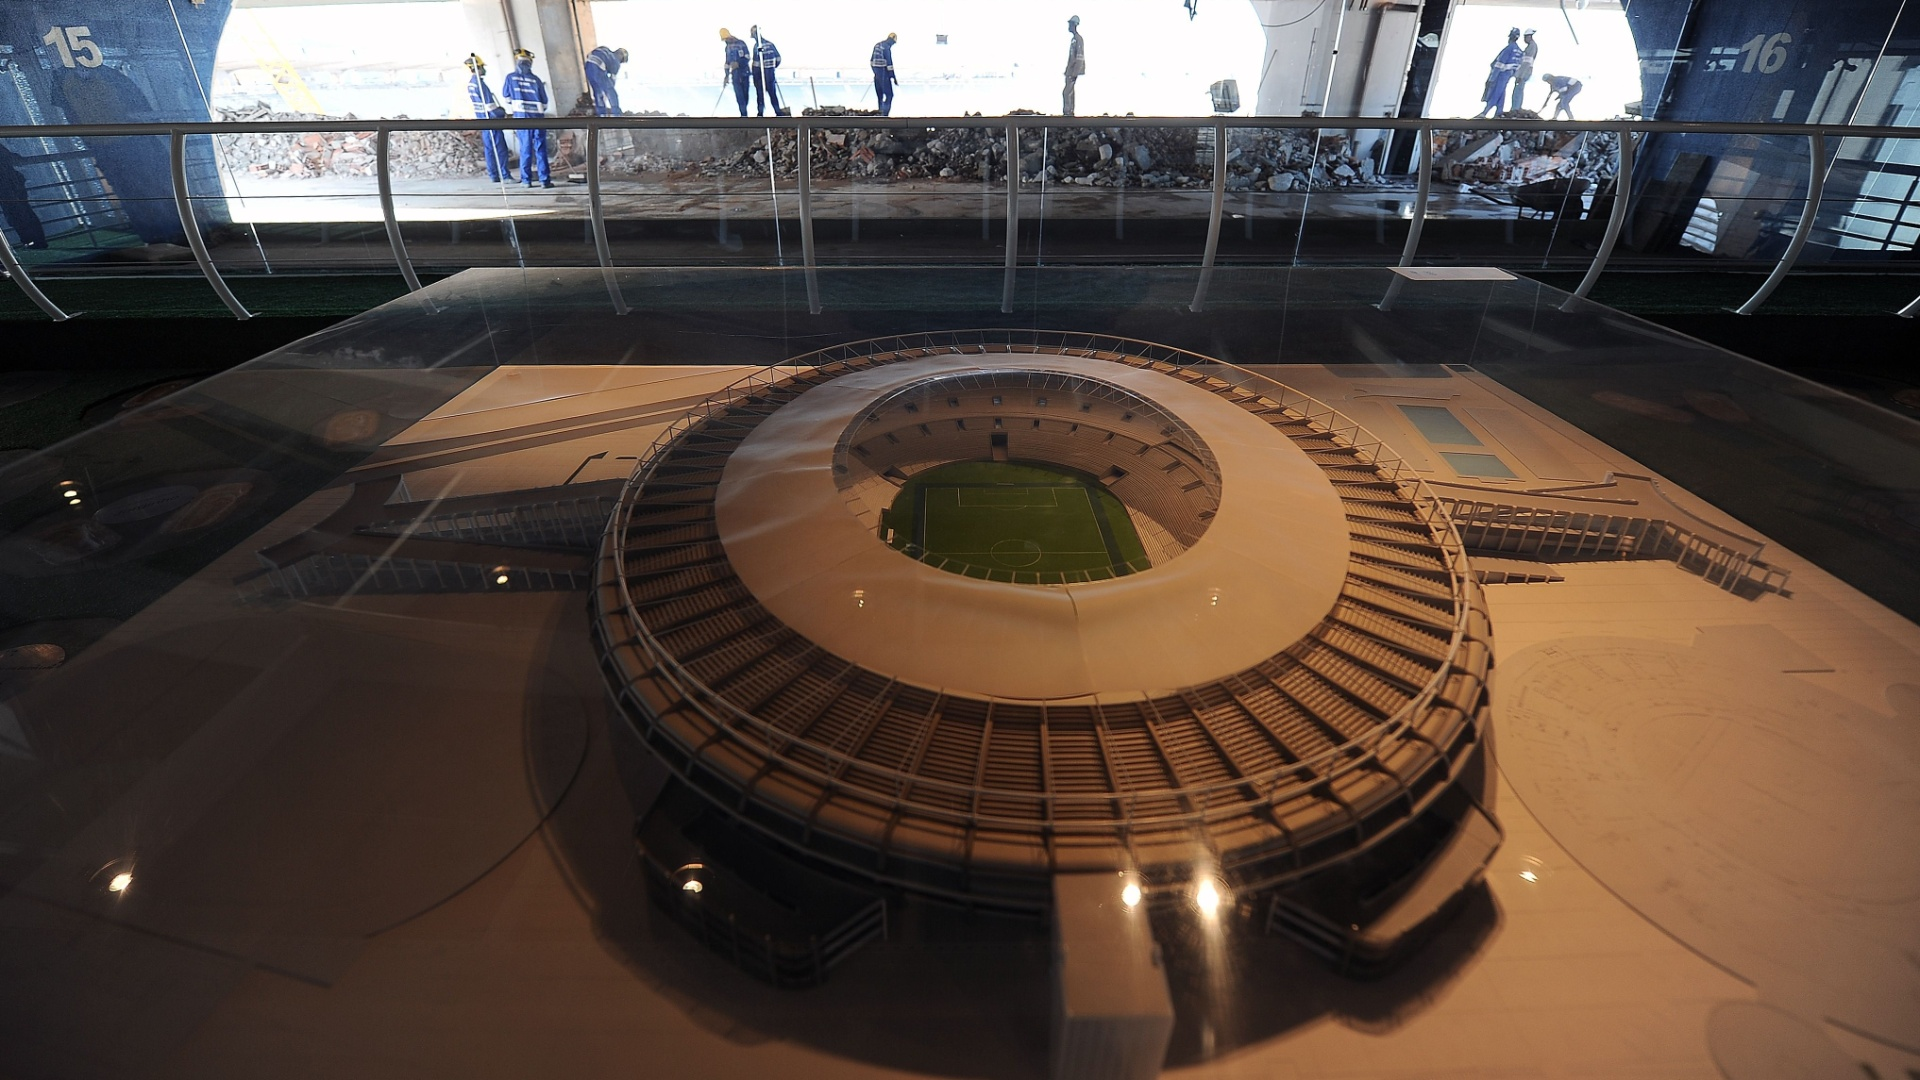 Maquete mostra como ficar o Maracan aps reforma para a Copa-2014; operrios retomaram trabalhos aps greve (19/09/11)